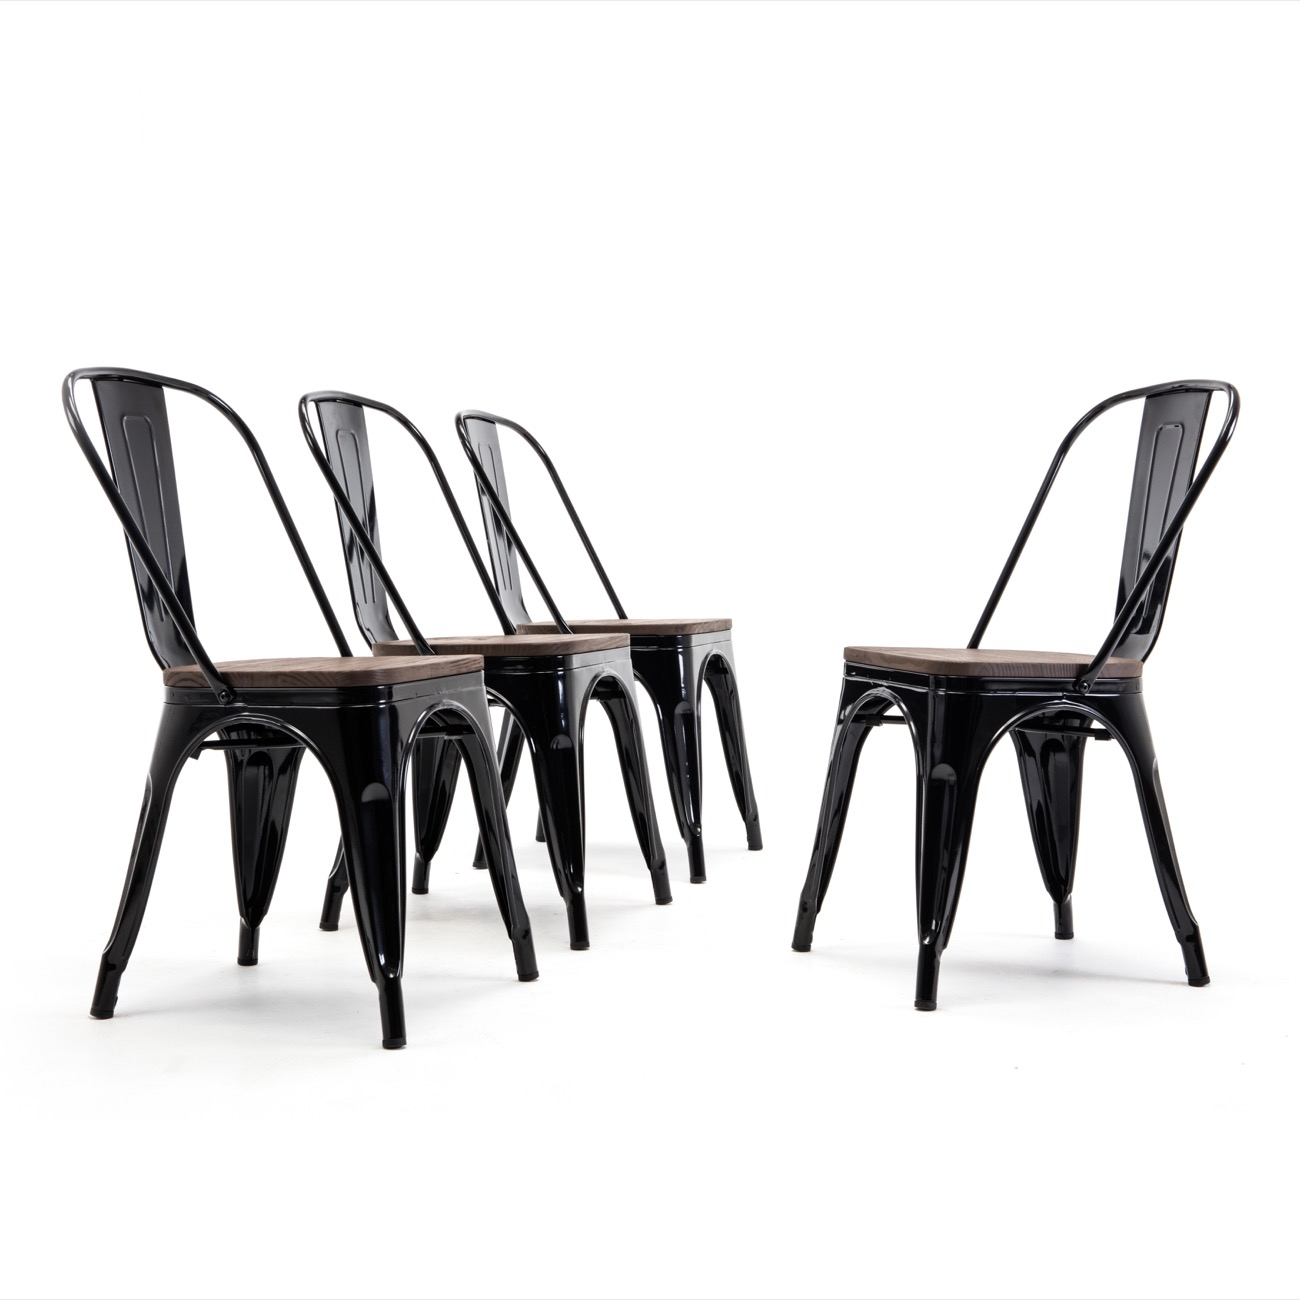 Beau BELLEZE Modern Style Metal Industrial Stackable Bistro Dining Chairs Set Of  4 Wood Seat Cafe Bar Restaurant Stool   Walmart.com